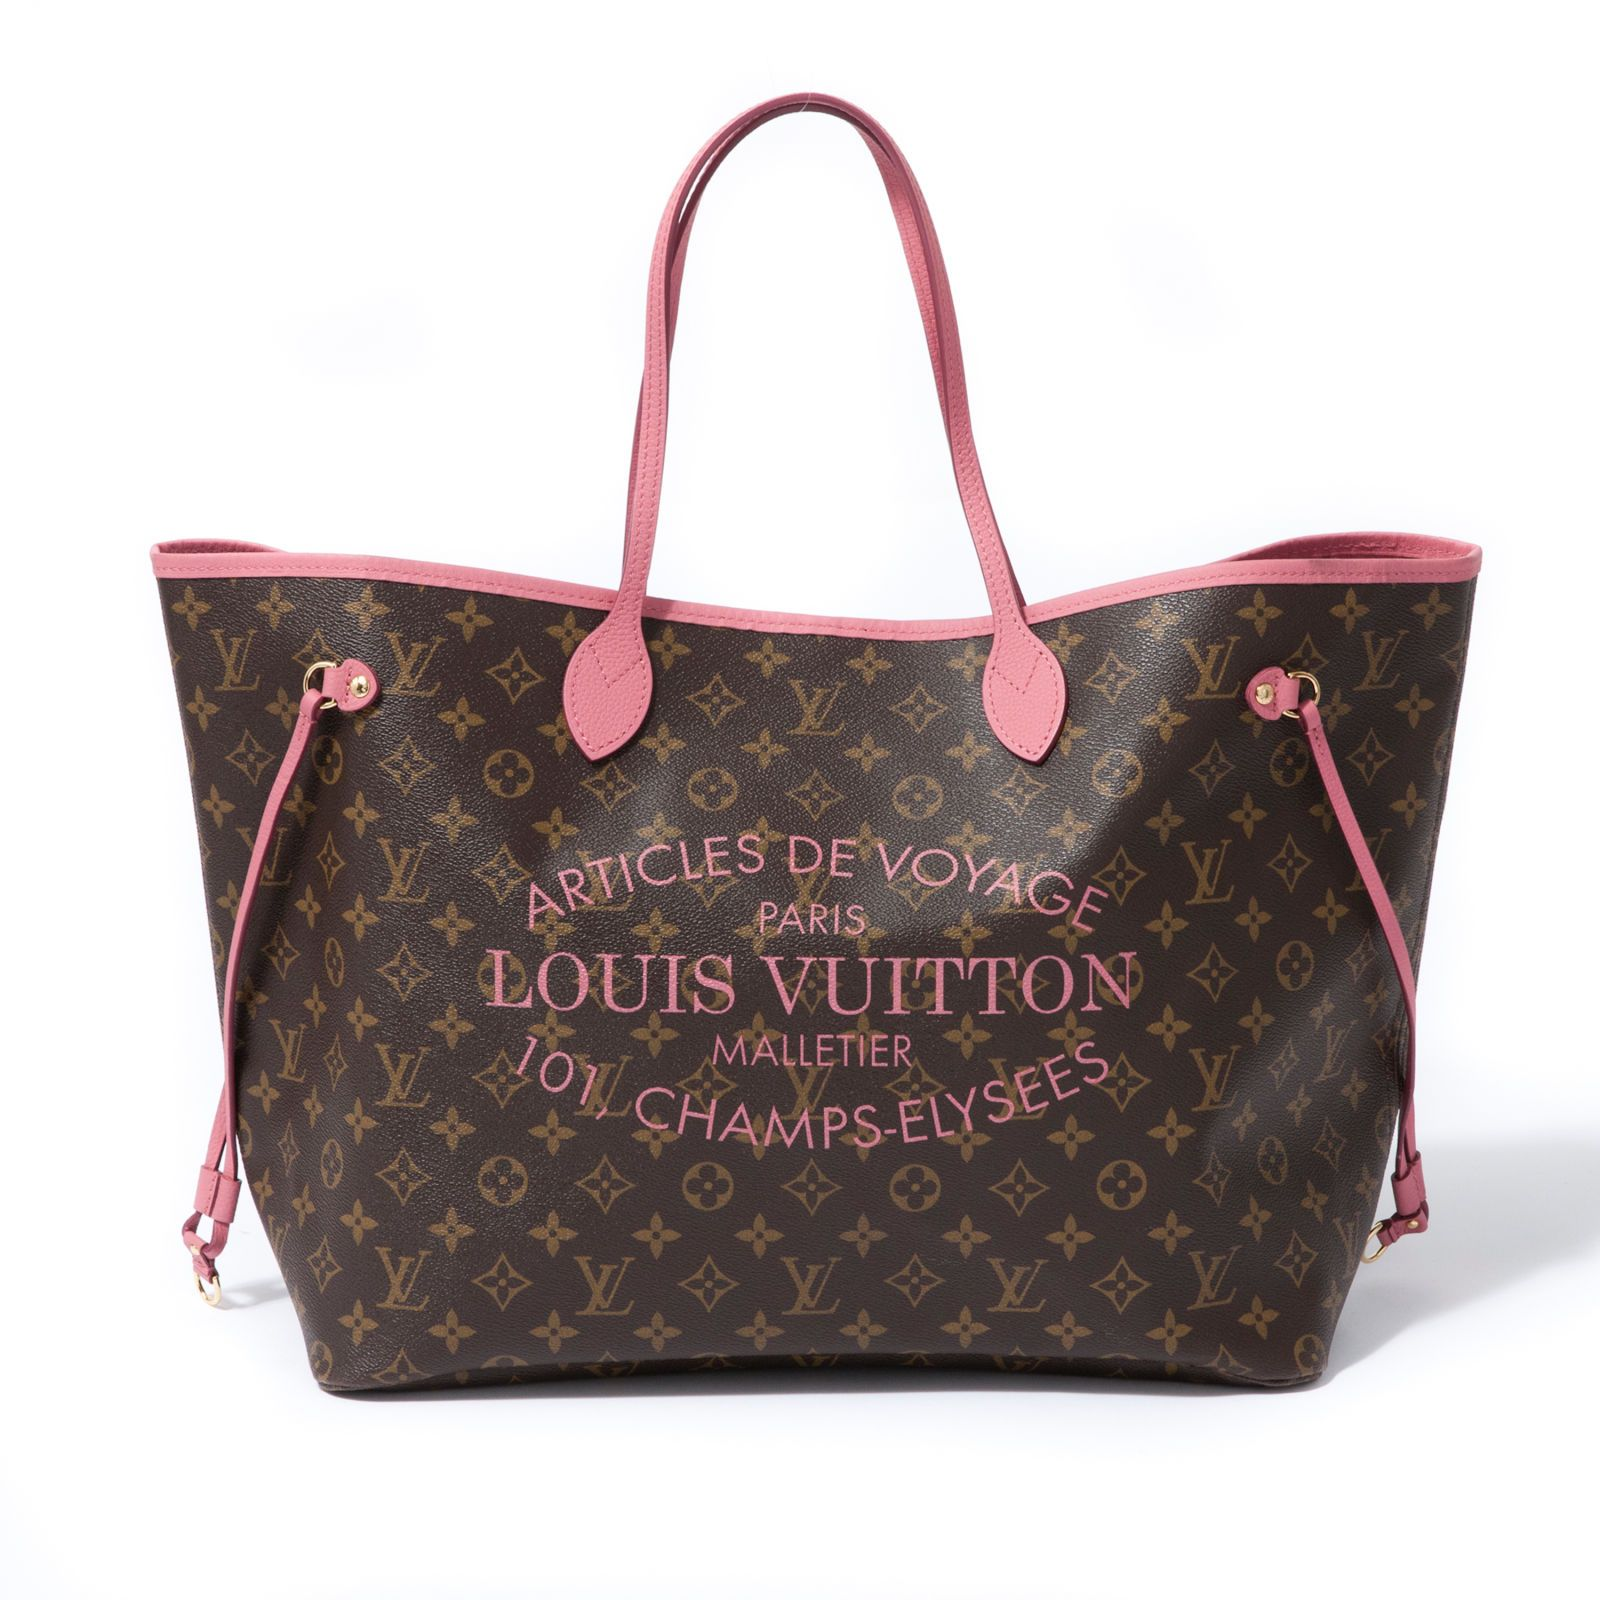 2c39879e40730 Louis Vuitton Neverfull bag Designerskie Torebki